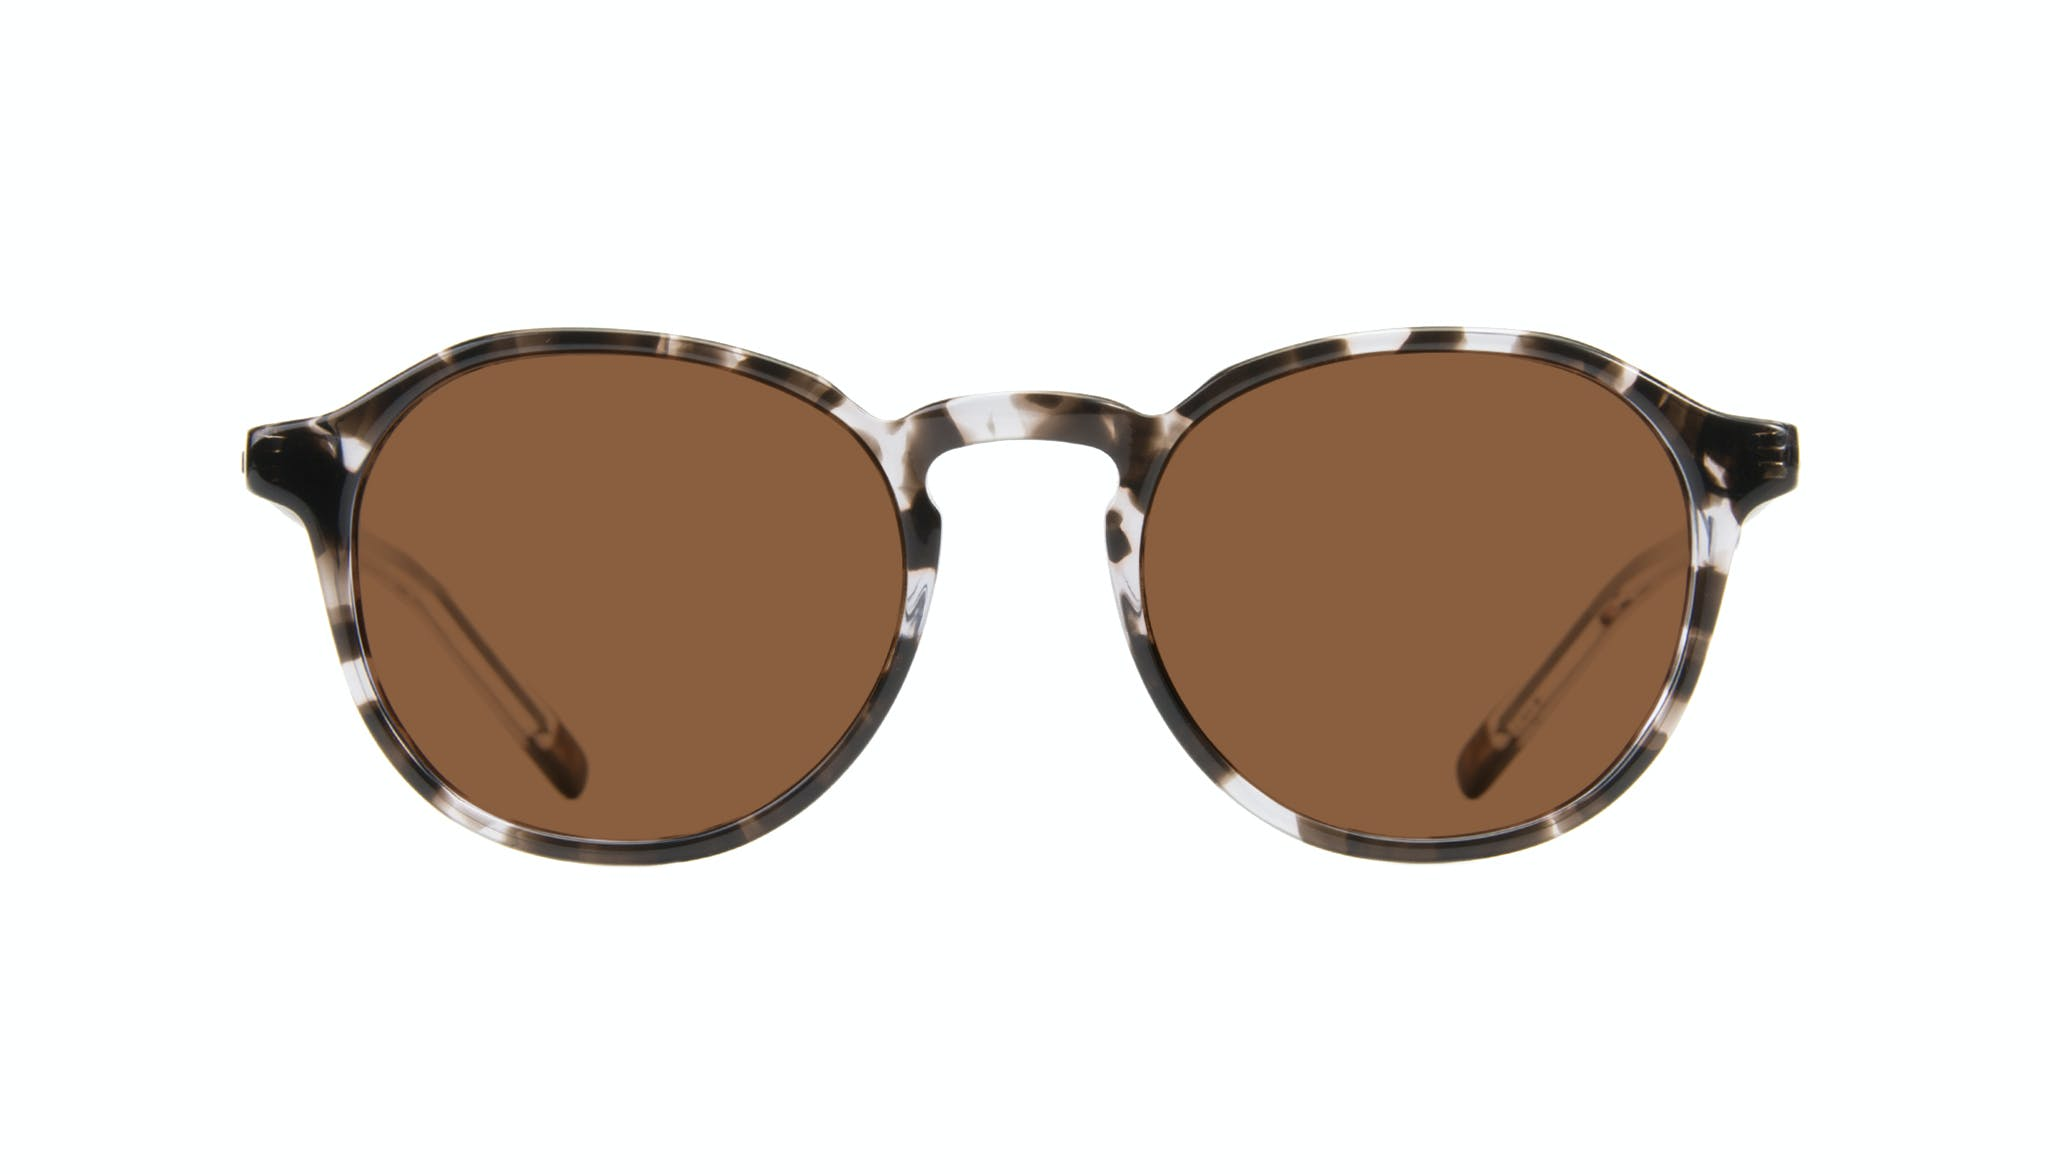 Affordable Fashion Glasses Round Sunglasses Men Prime Mud Tort Front